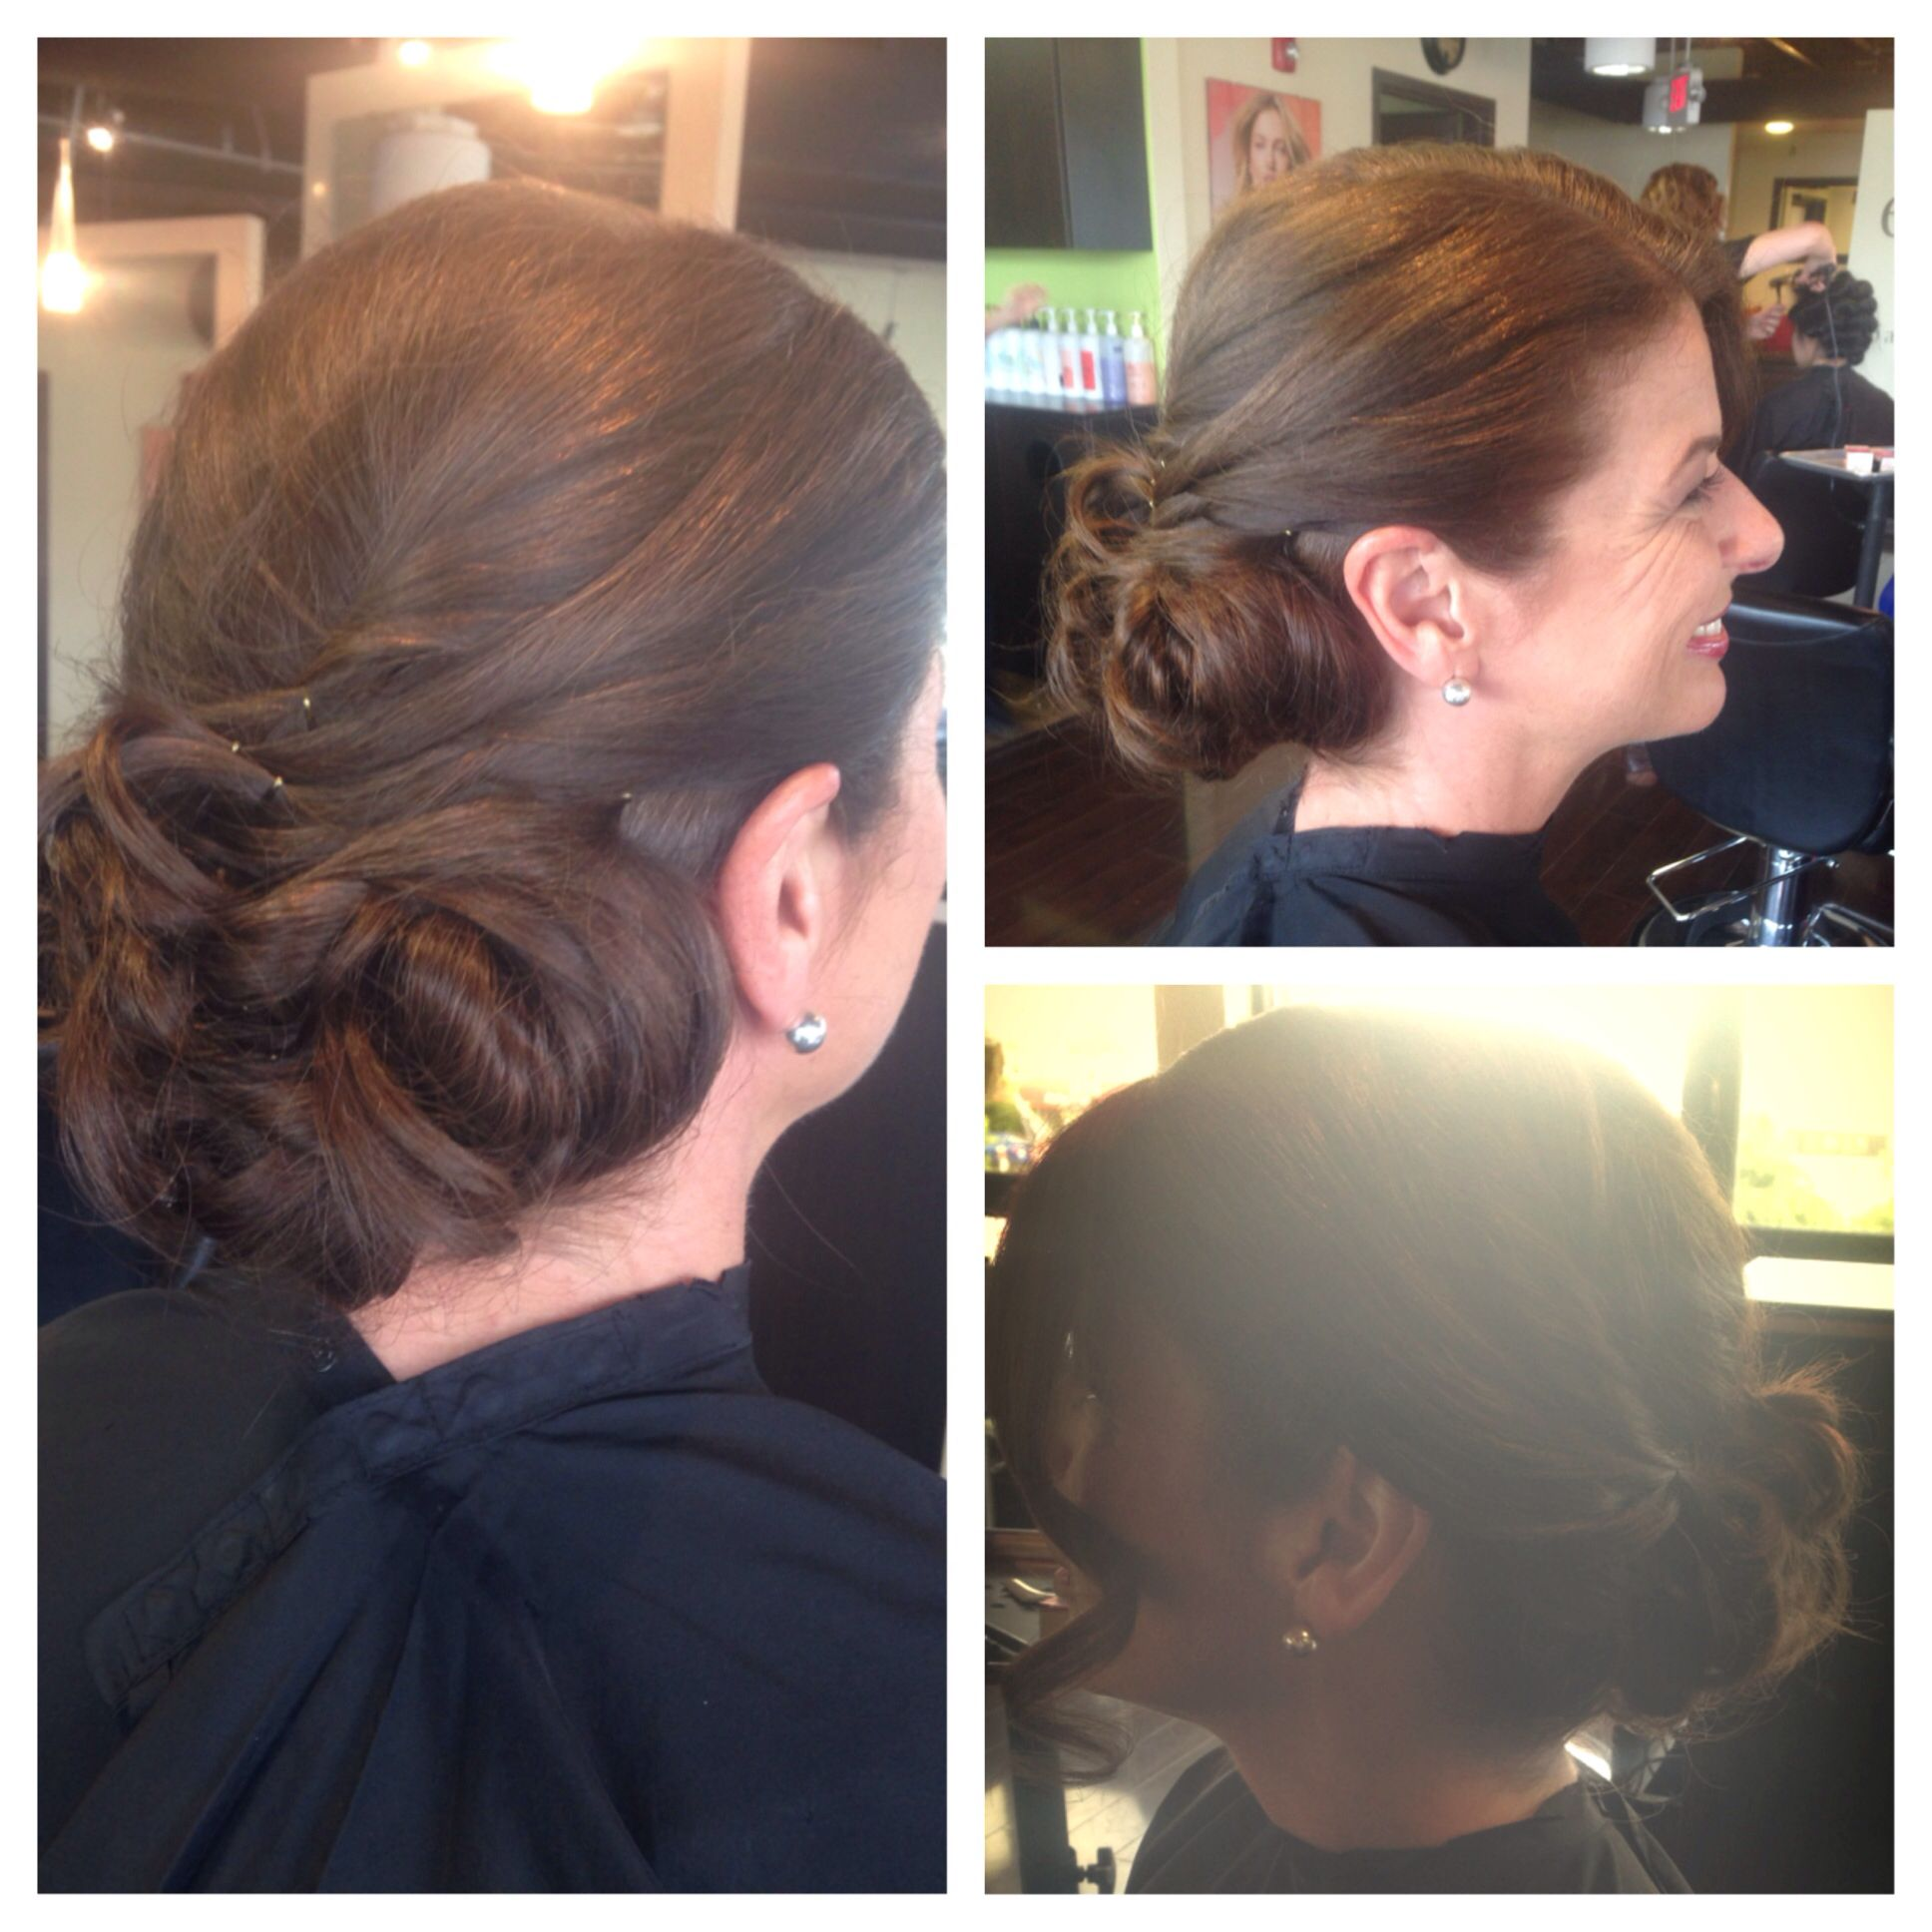 Wedding bells ringing! Updo for mother of the bride! Call 781 205 4188 to book your appointments with me! Facebook.com/hairandmakeupbylaurenbechard @embelleish salon